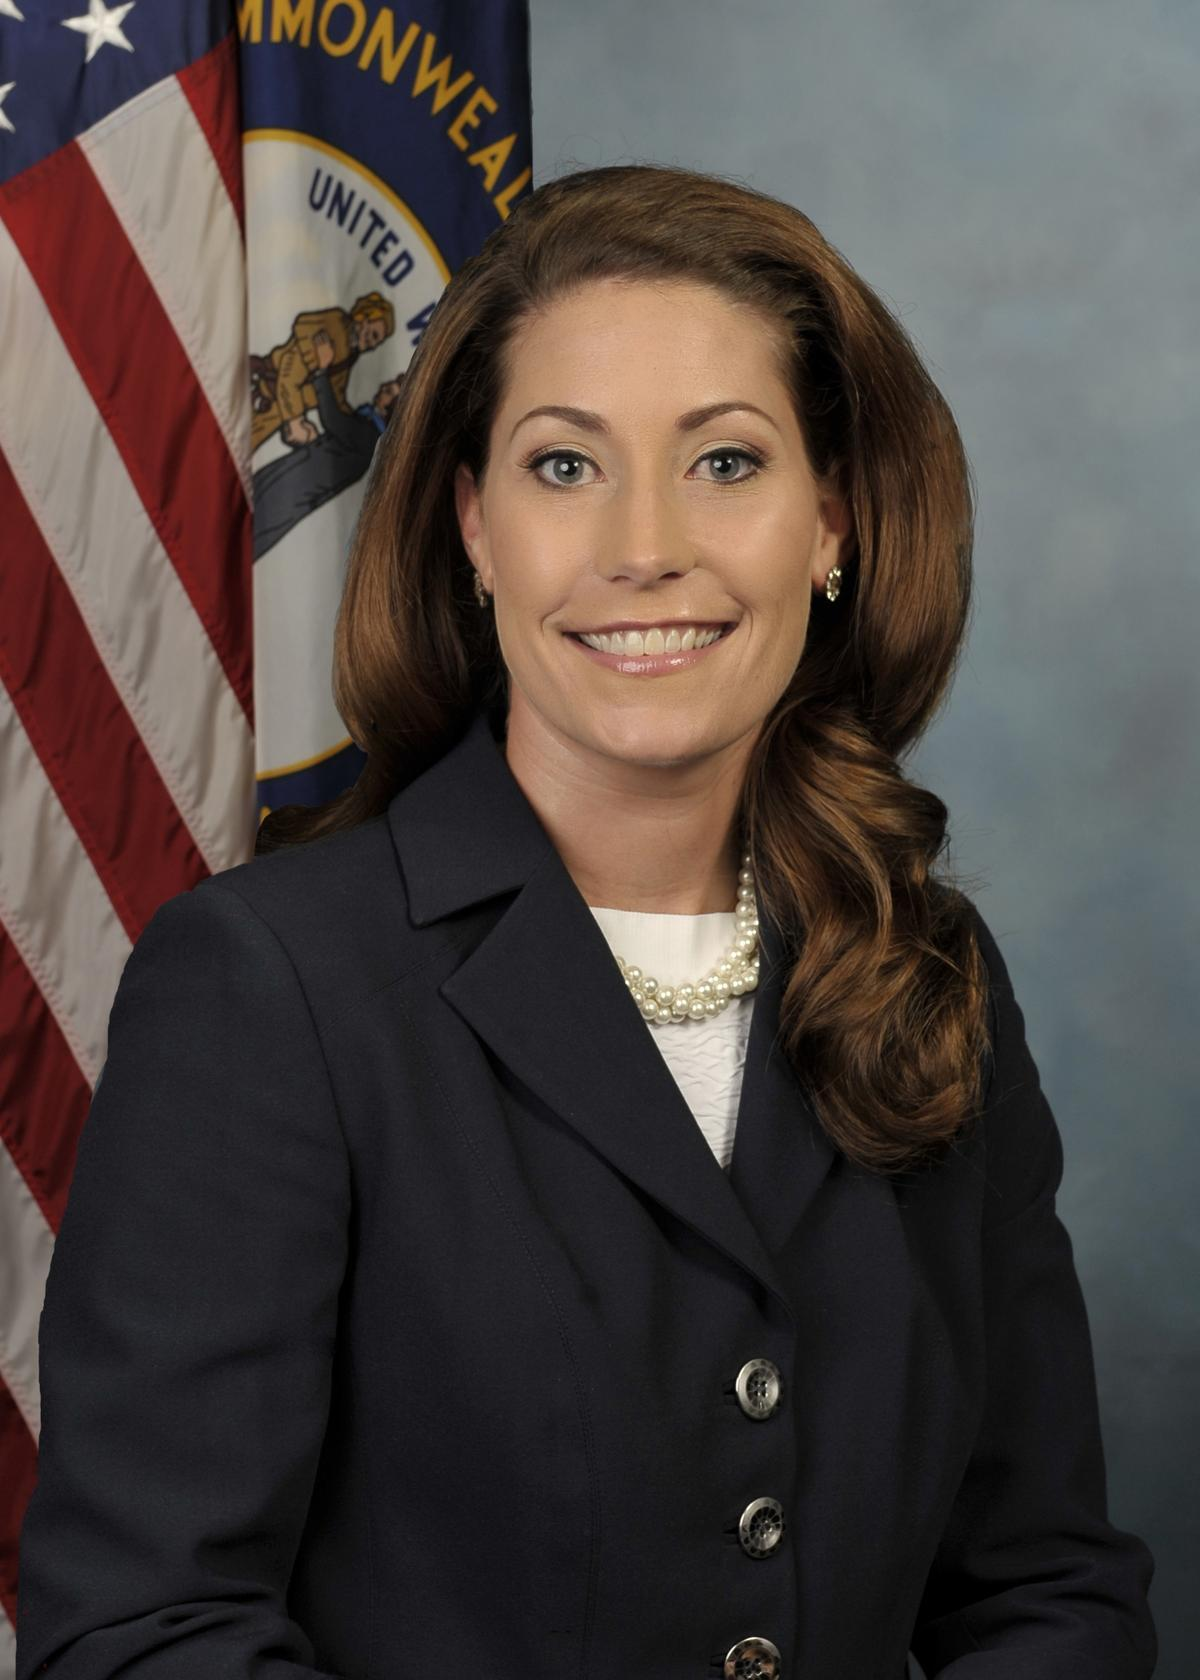 alison grimes and same sex marriage in Bellevue